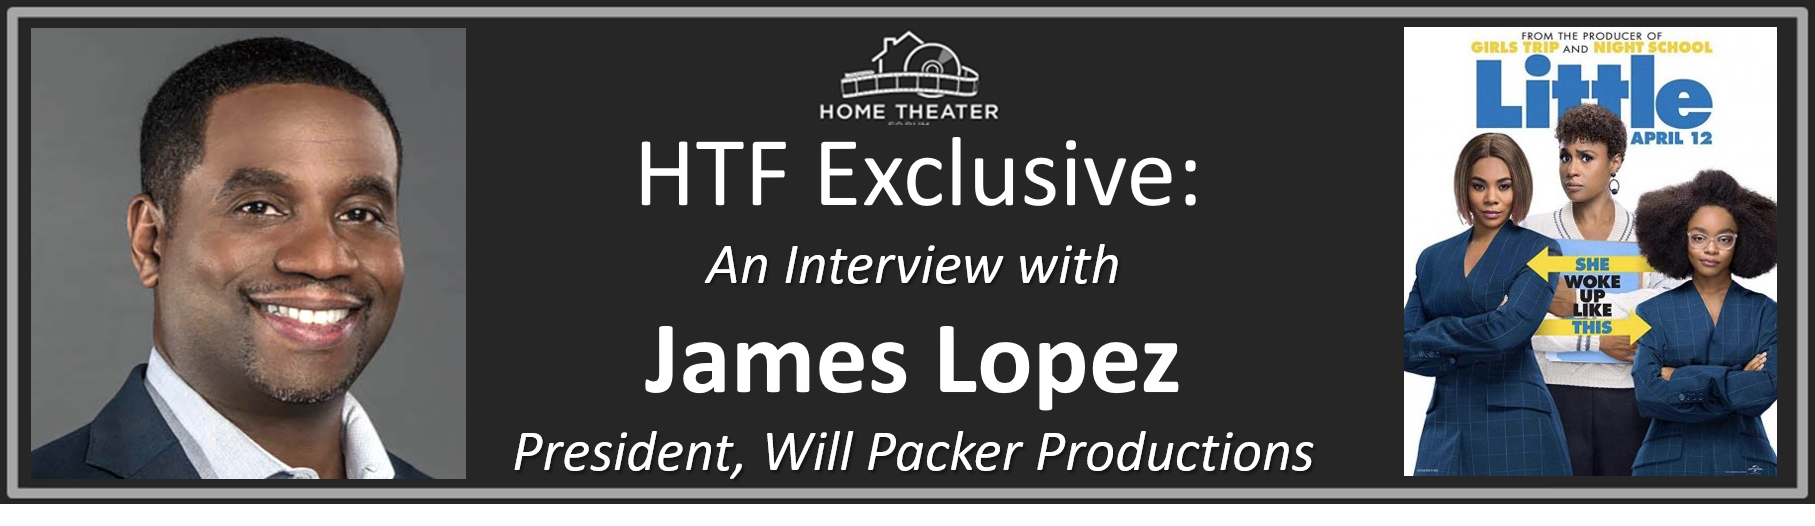 HTF Interview with James Lopez.